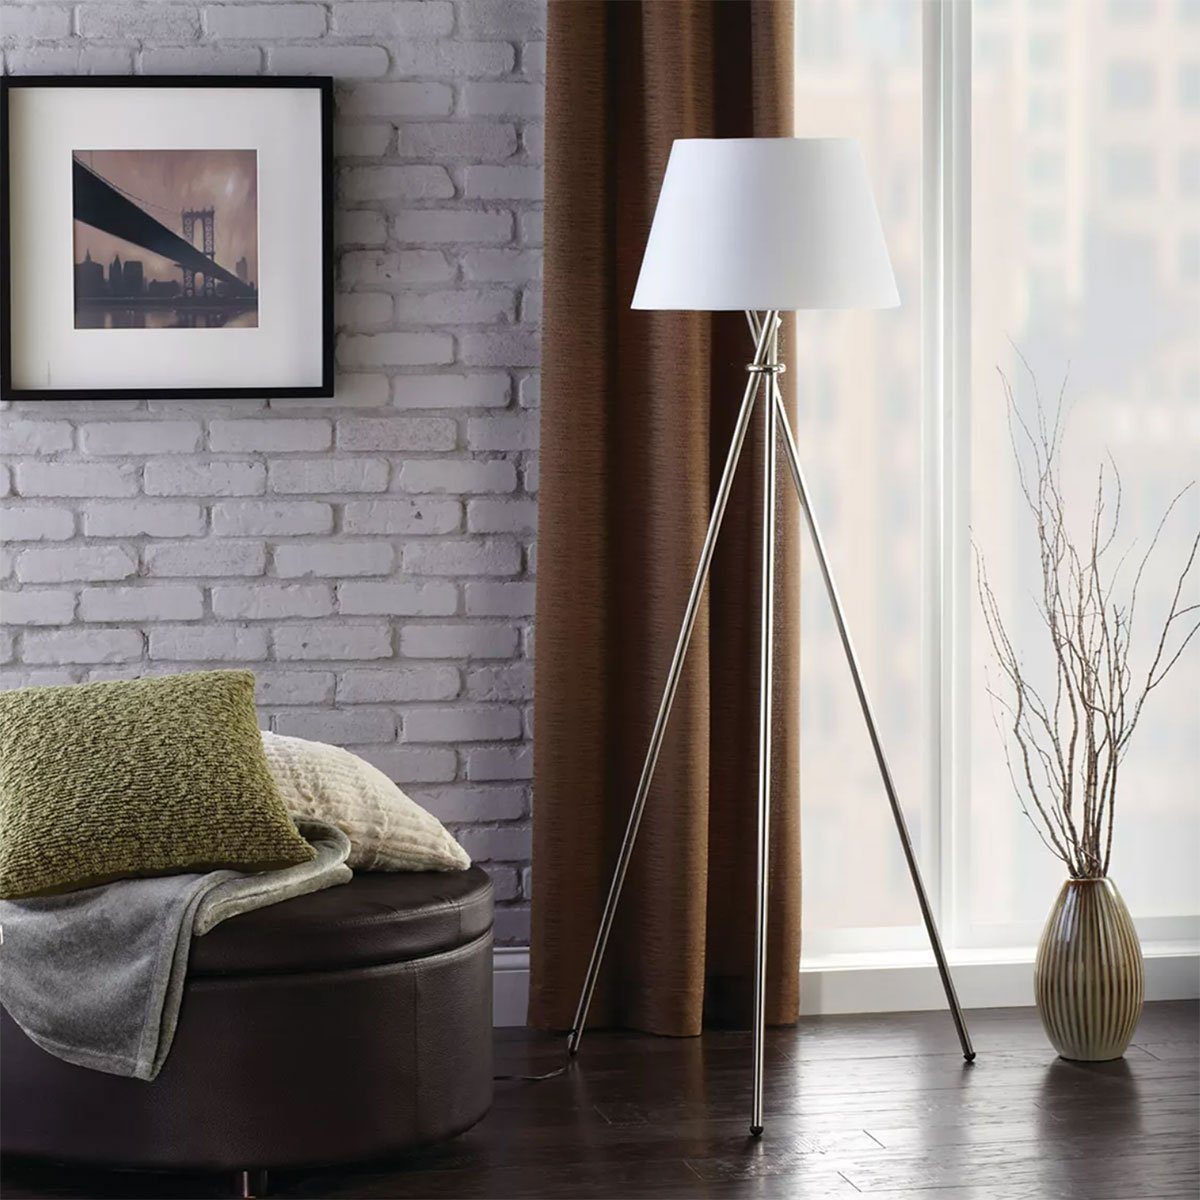 Get A Peek At What Home Trends Are For 2020 Taste Of Home